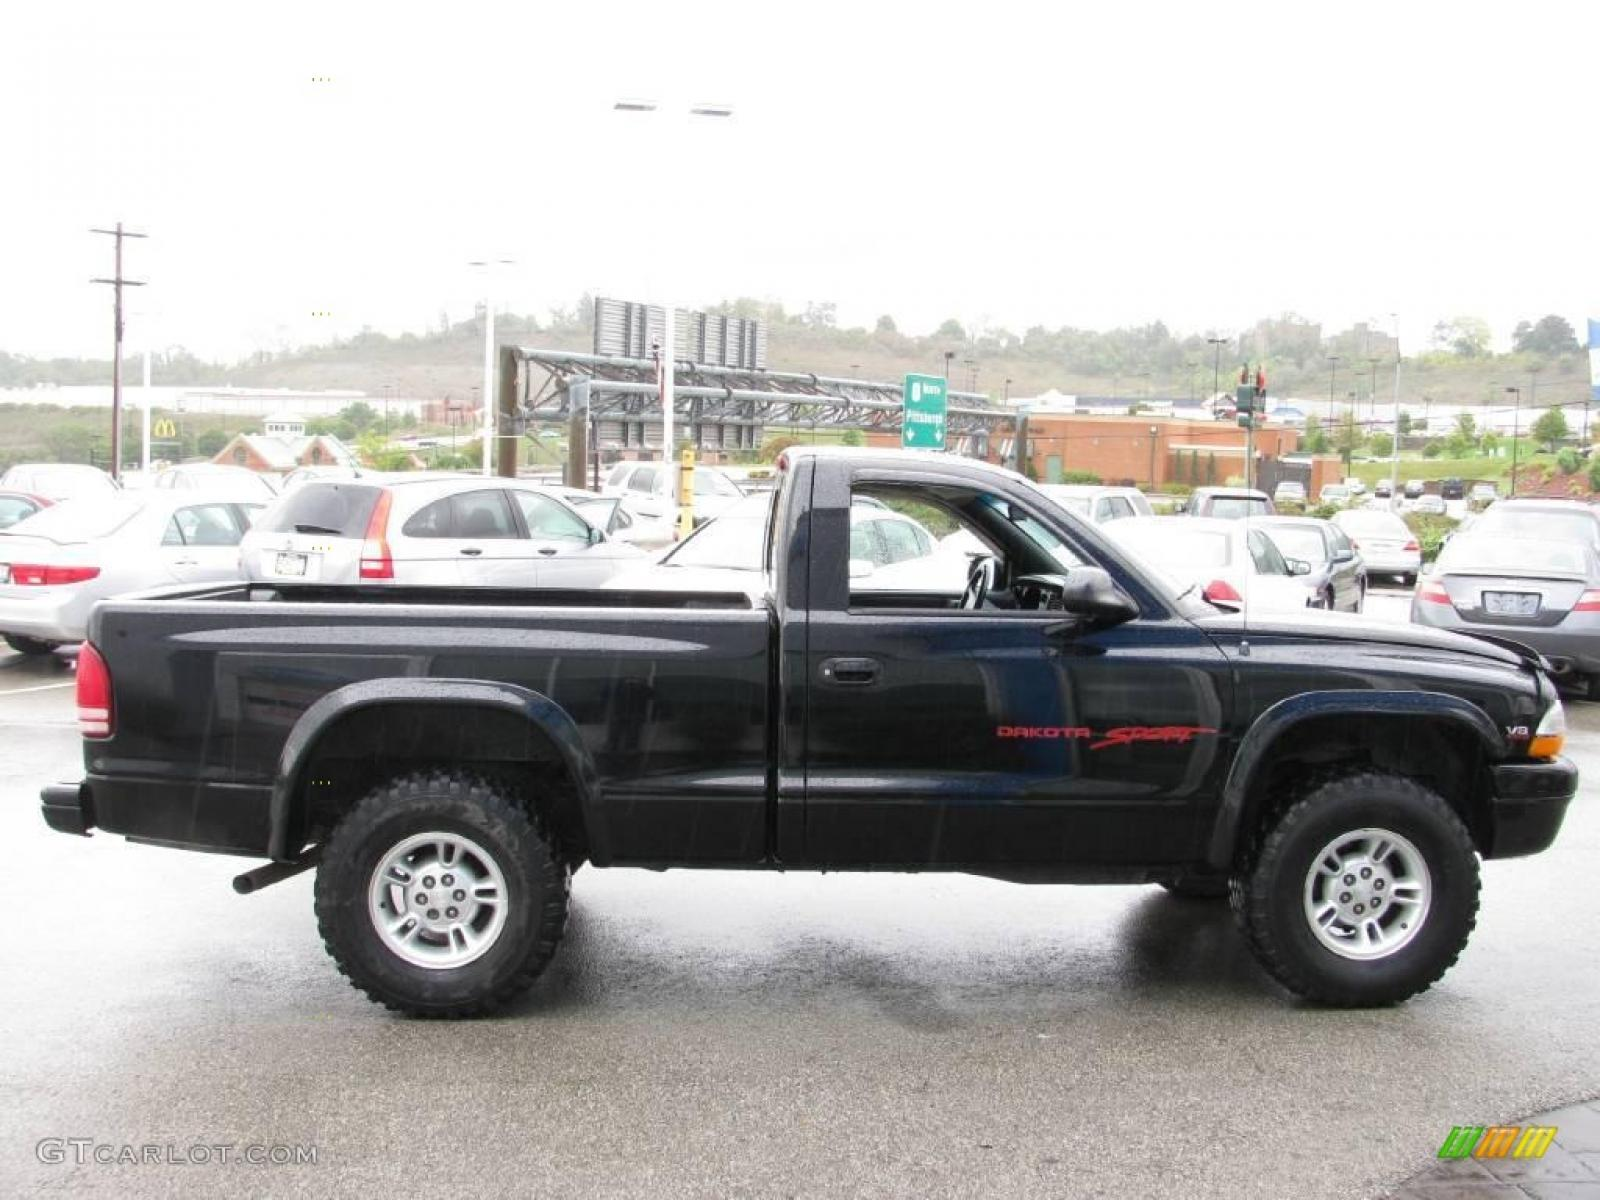 Dodge Dakota on Dodge Dakota V8